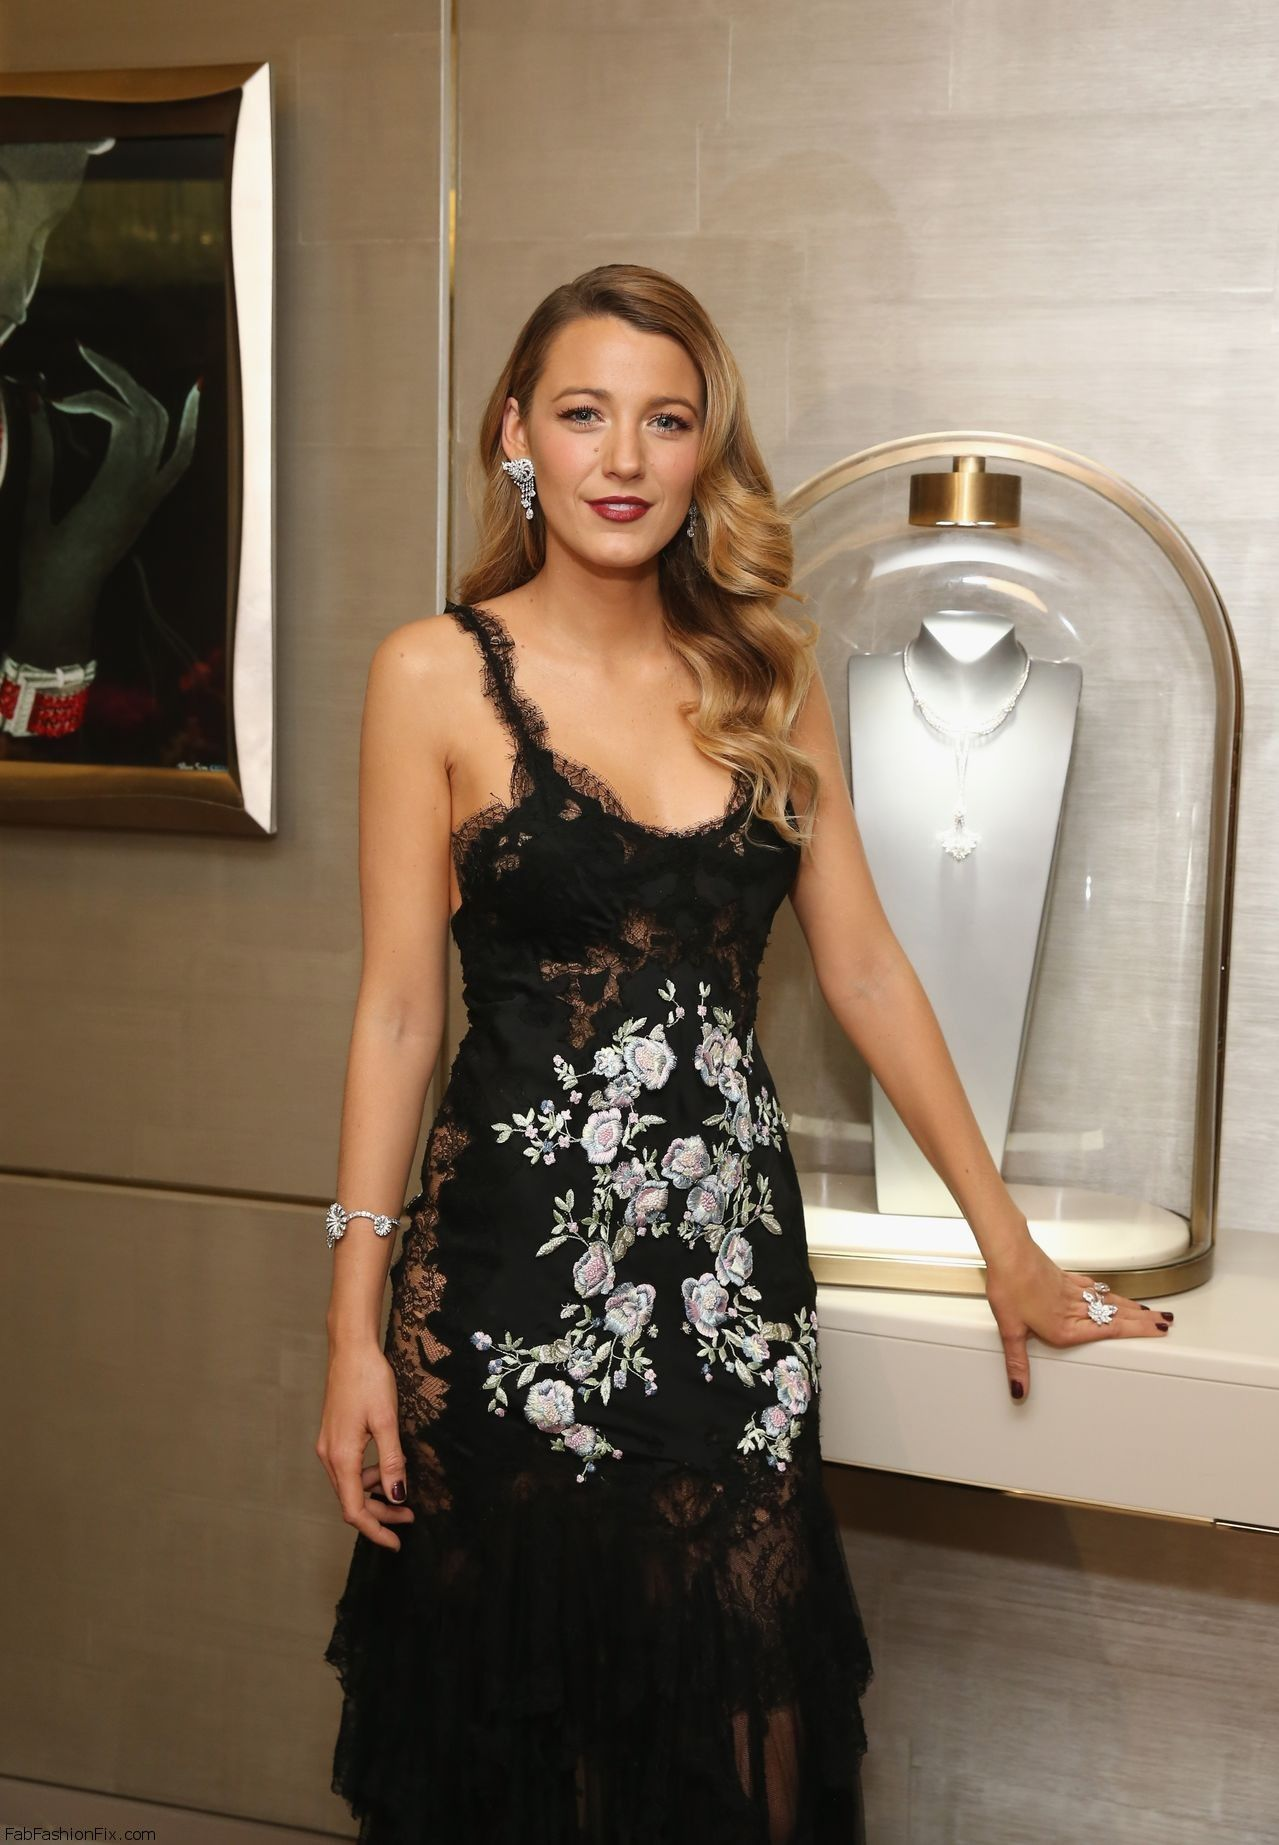 Blake_Lively_Fifth_Avenue_Unveiling121013_tcc_1